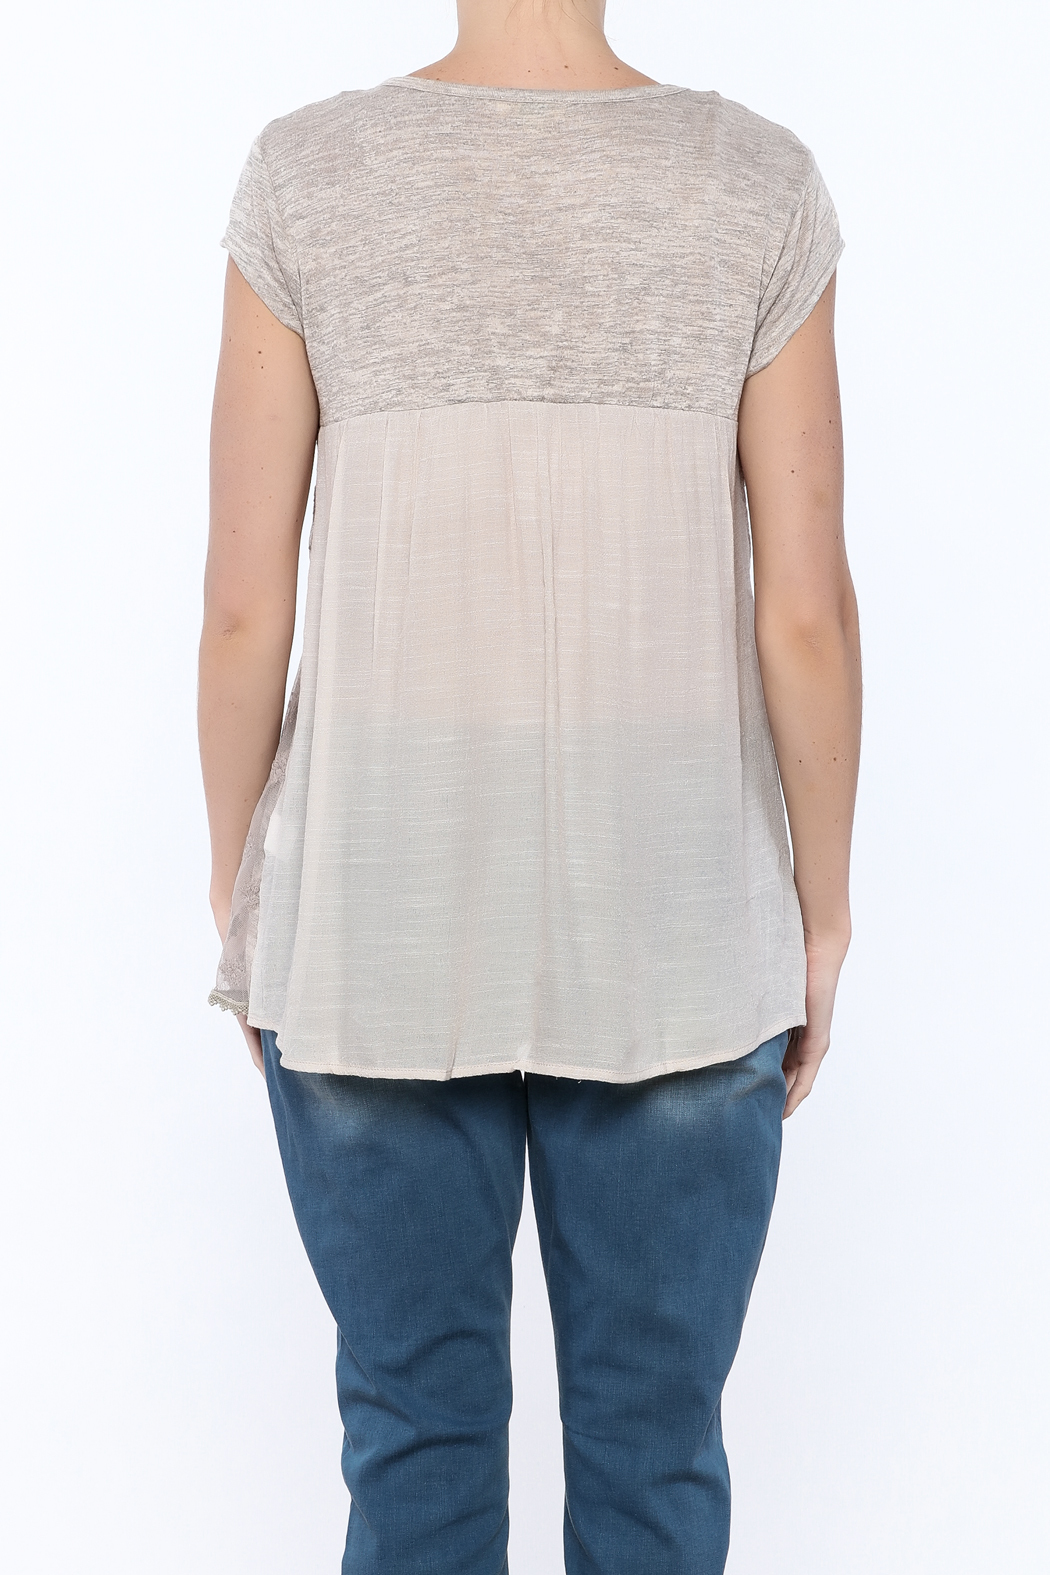 KORI AMERICA All In The Details Tee - Back Cropped Image